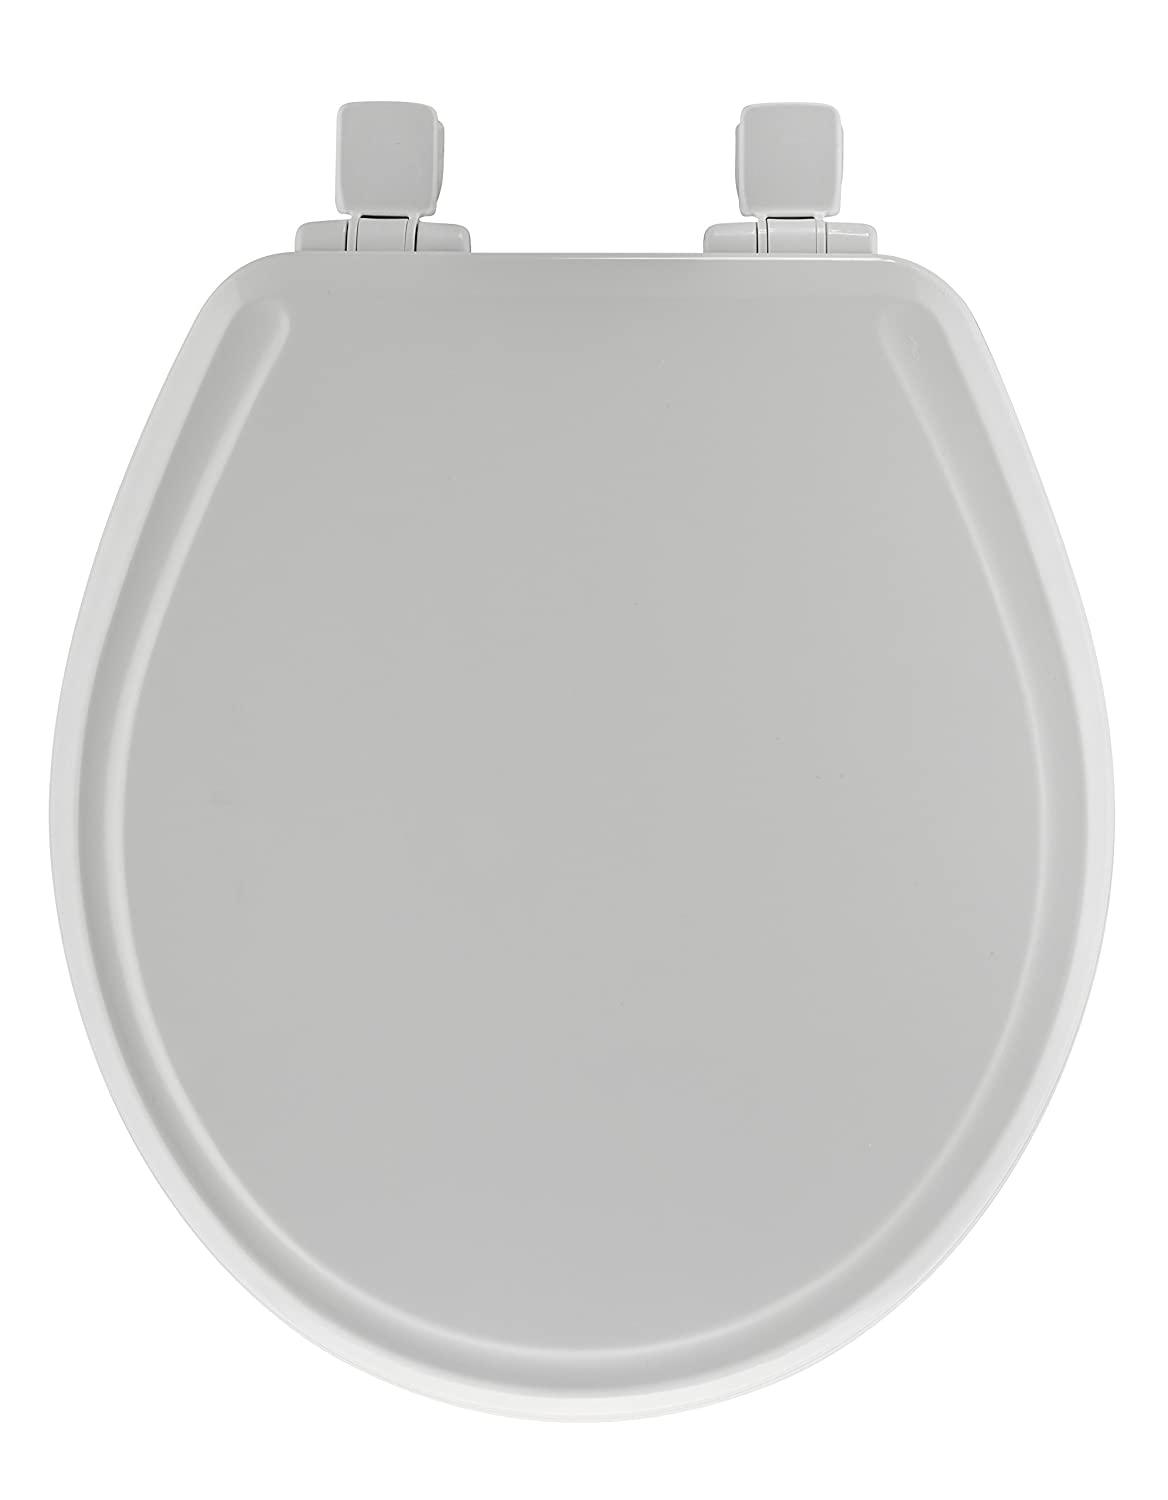 The Best Toilet Seat 1